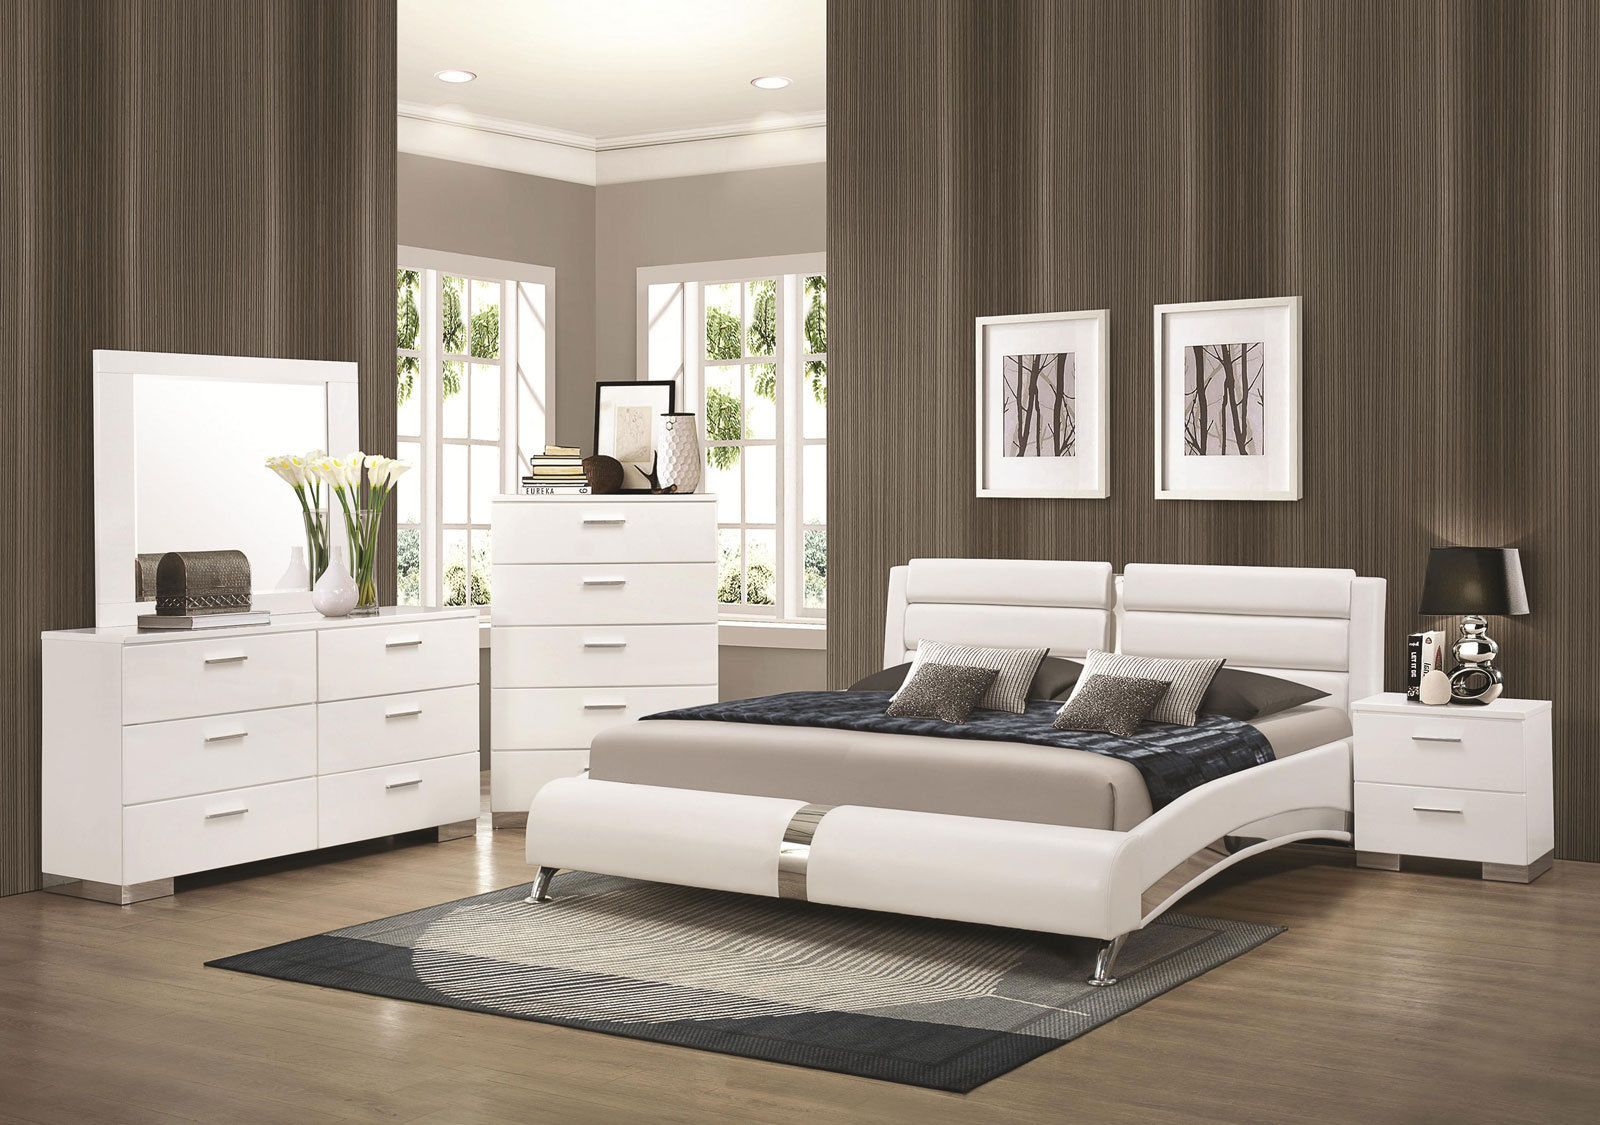 Bedroom Ideas - Bedroom Furniture - STANTON-Ultra Modern 5pcs Glossy ...